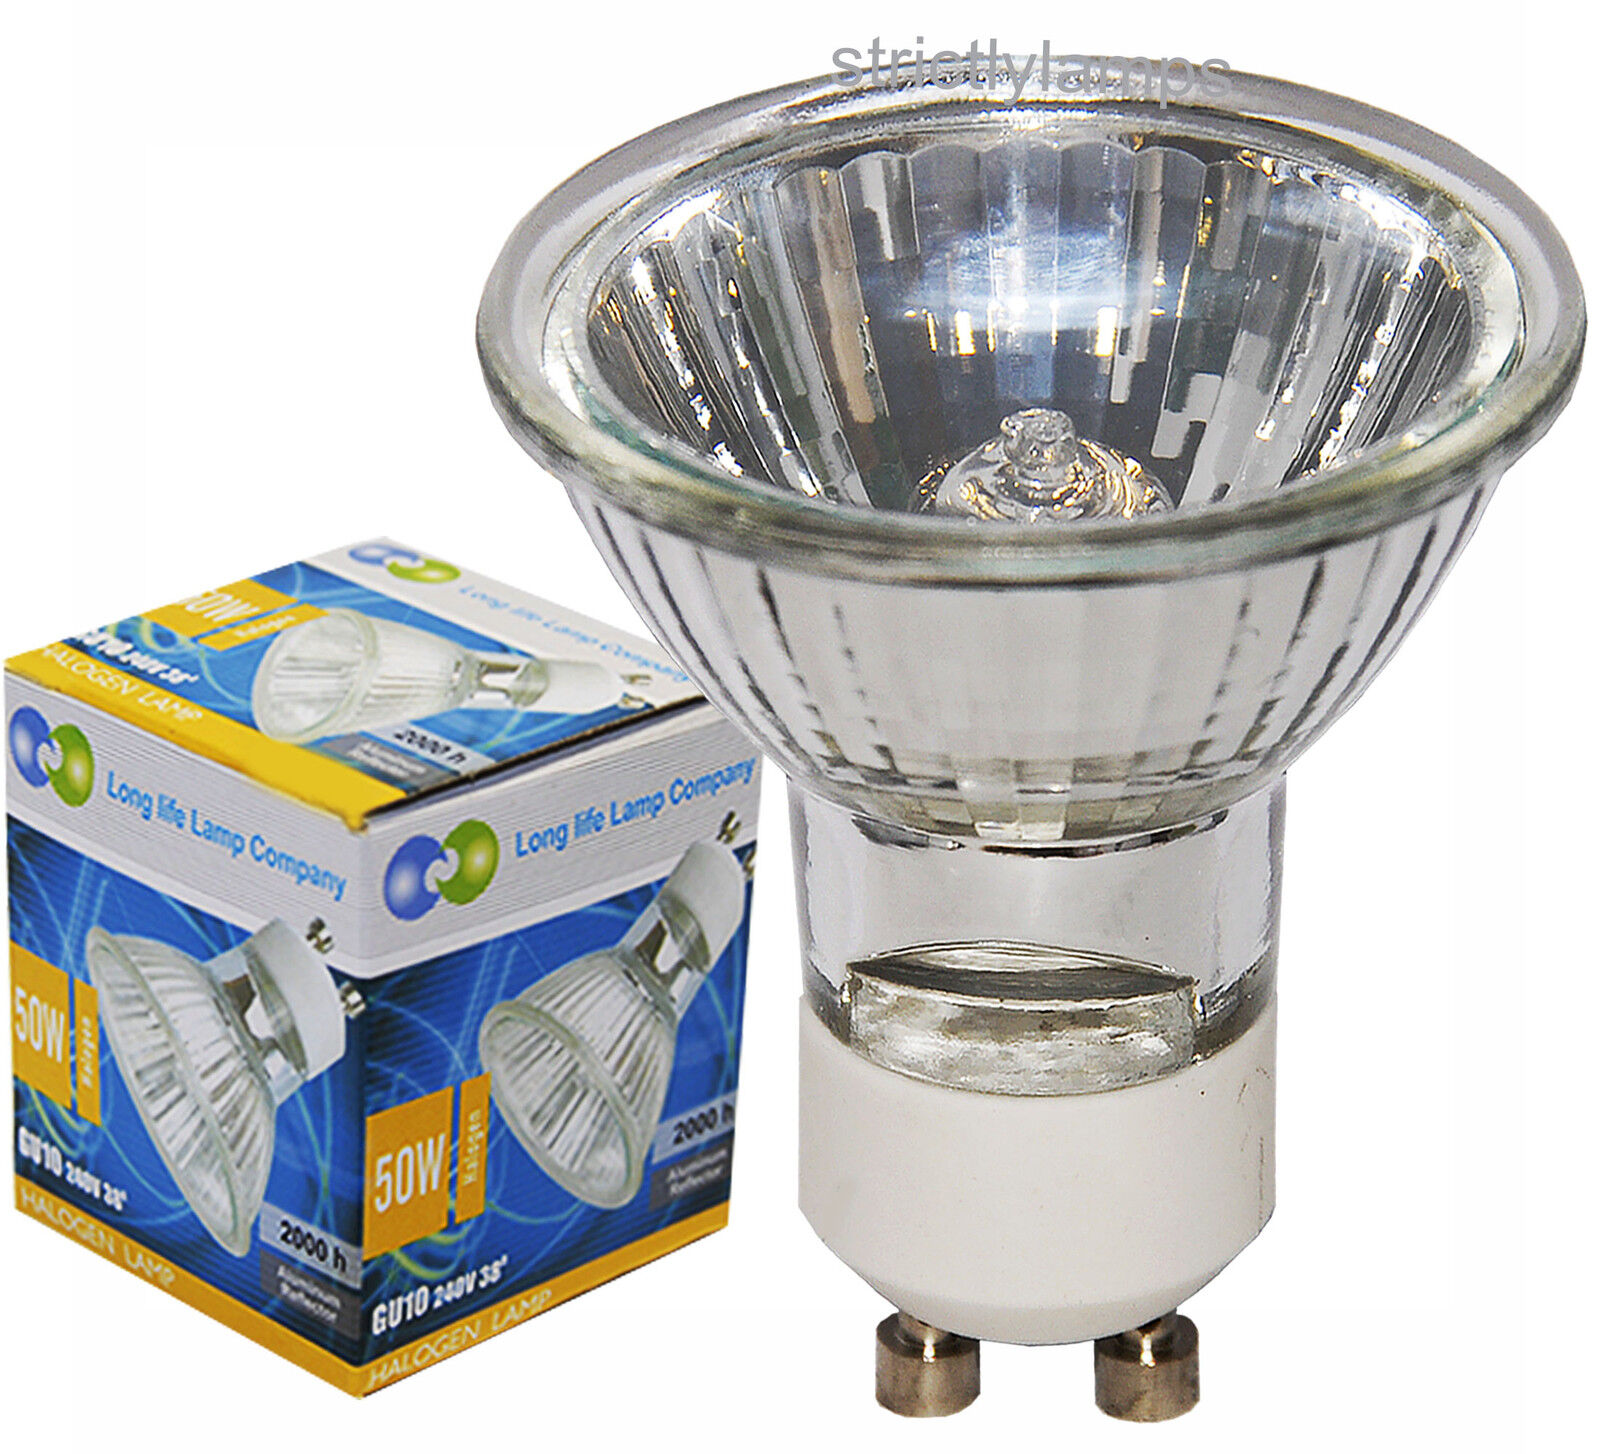 long life gu10 halogen light bulbs spot light bulbs lamps 25w or 35w or 50w ebay